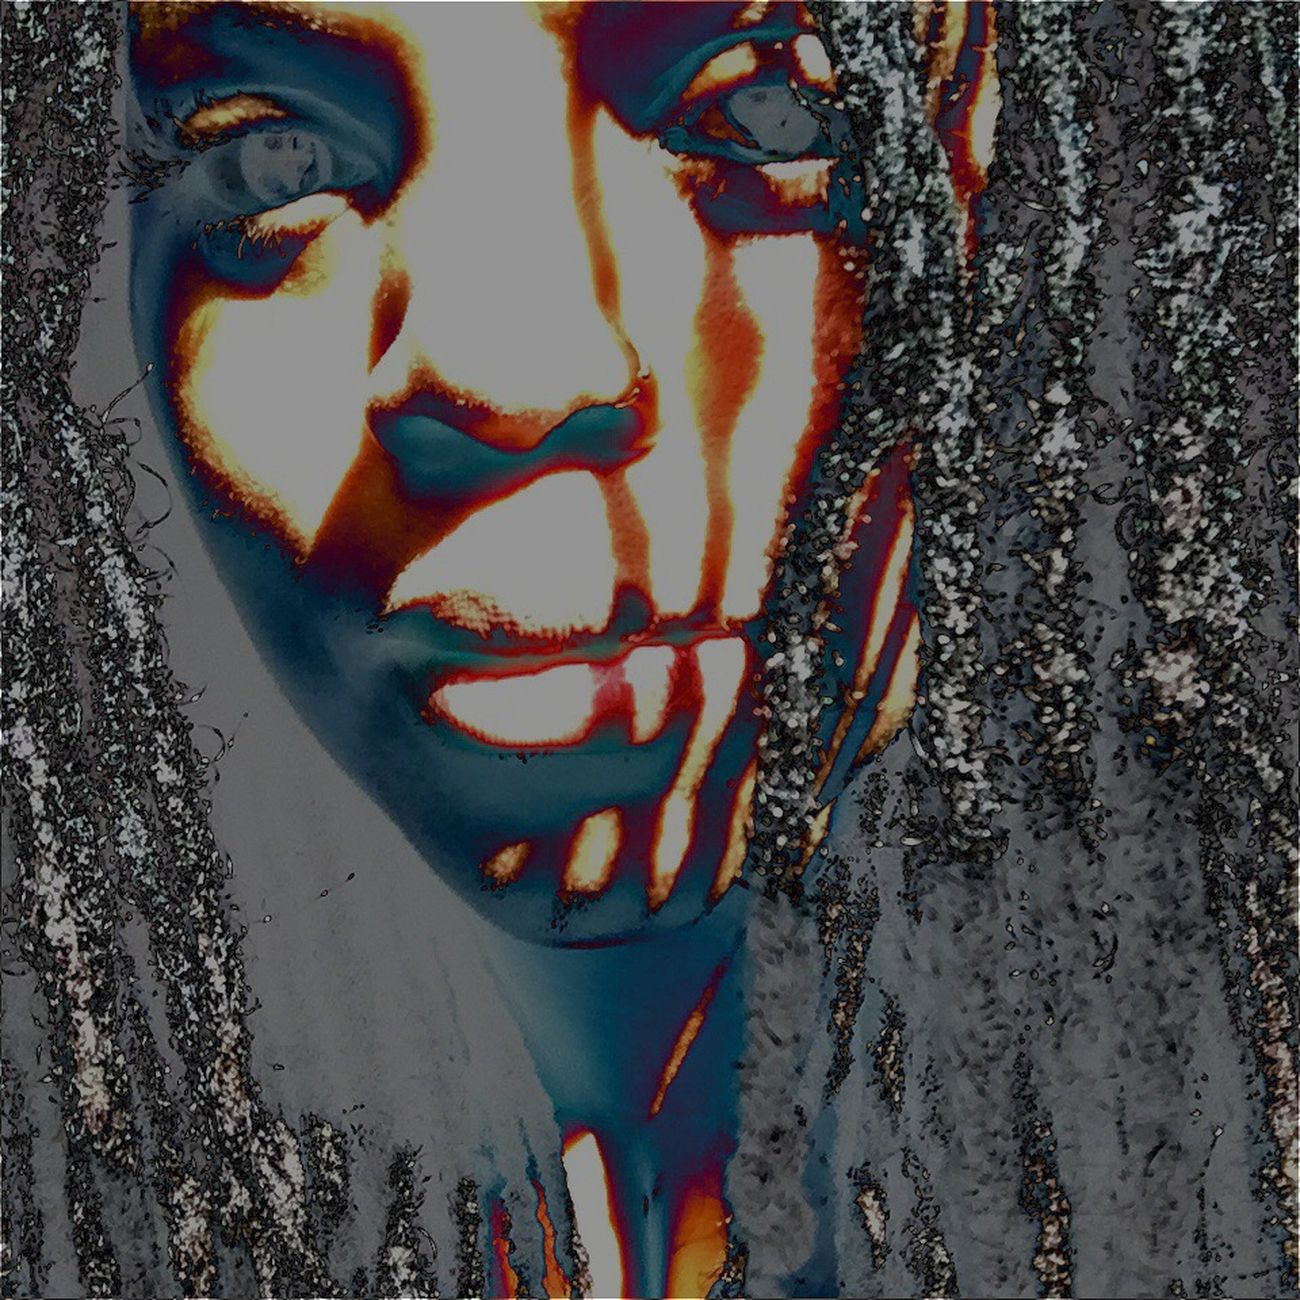 That's Me Artistic Expression Self Expression Enjoying Life Making Jewelry Lioness Bohemian Empress Lips Locs Beauty Let Your Hair Down Crazy Edit!